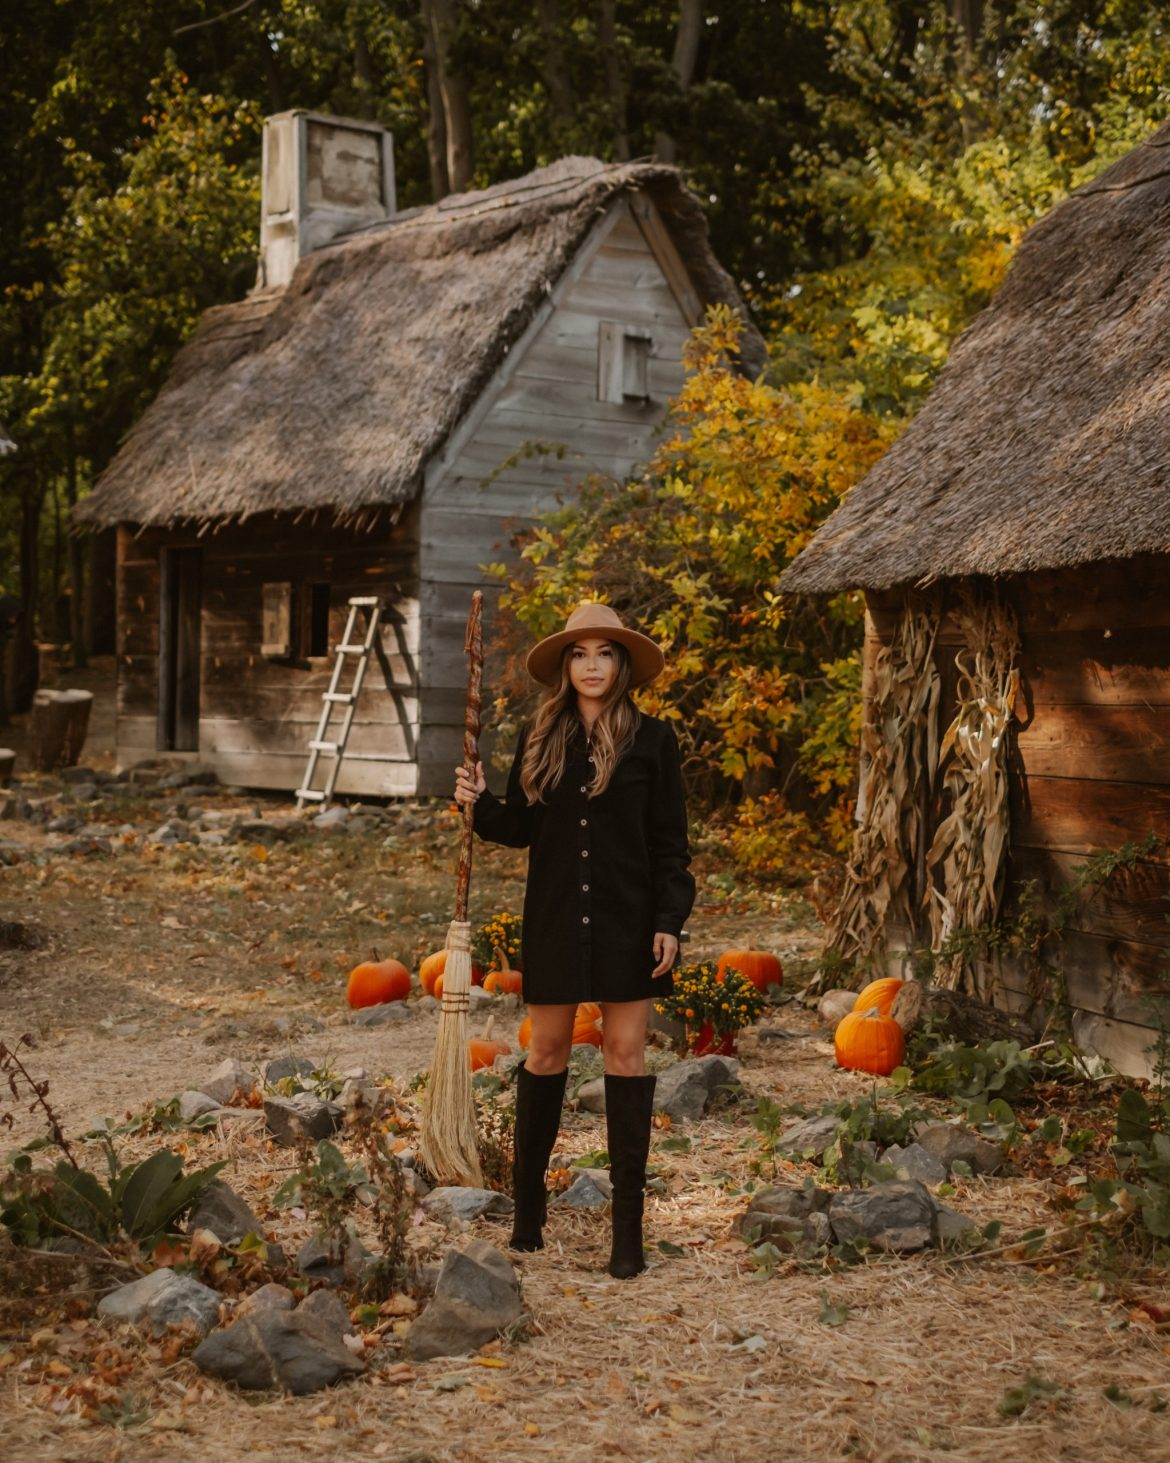 Where To Find All The Hocus Pocus Filming Locations in Salem, Massachusetts